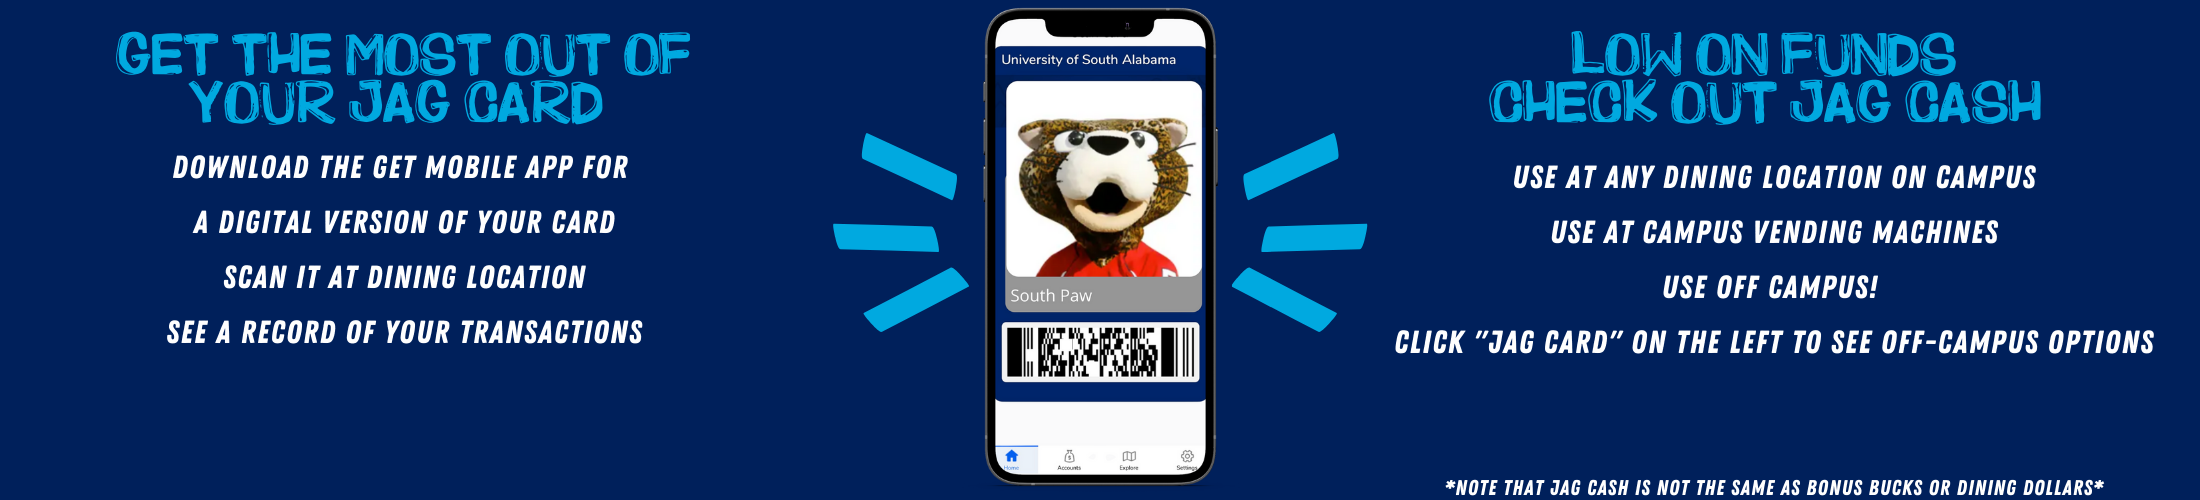 Download the get mobile app for a digital version of your Jag Card. Scan it at dining location. See a record of your transaction.